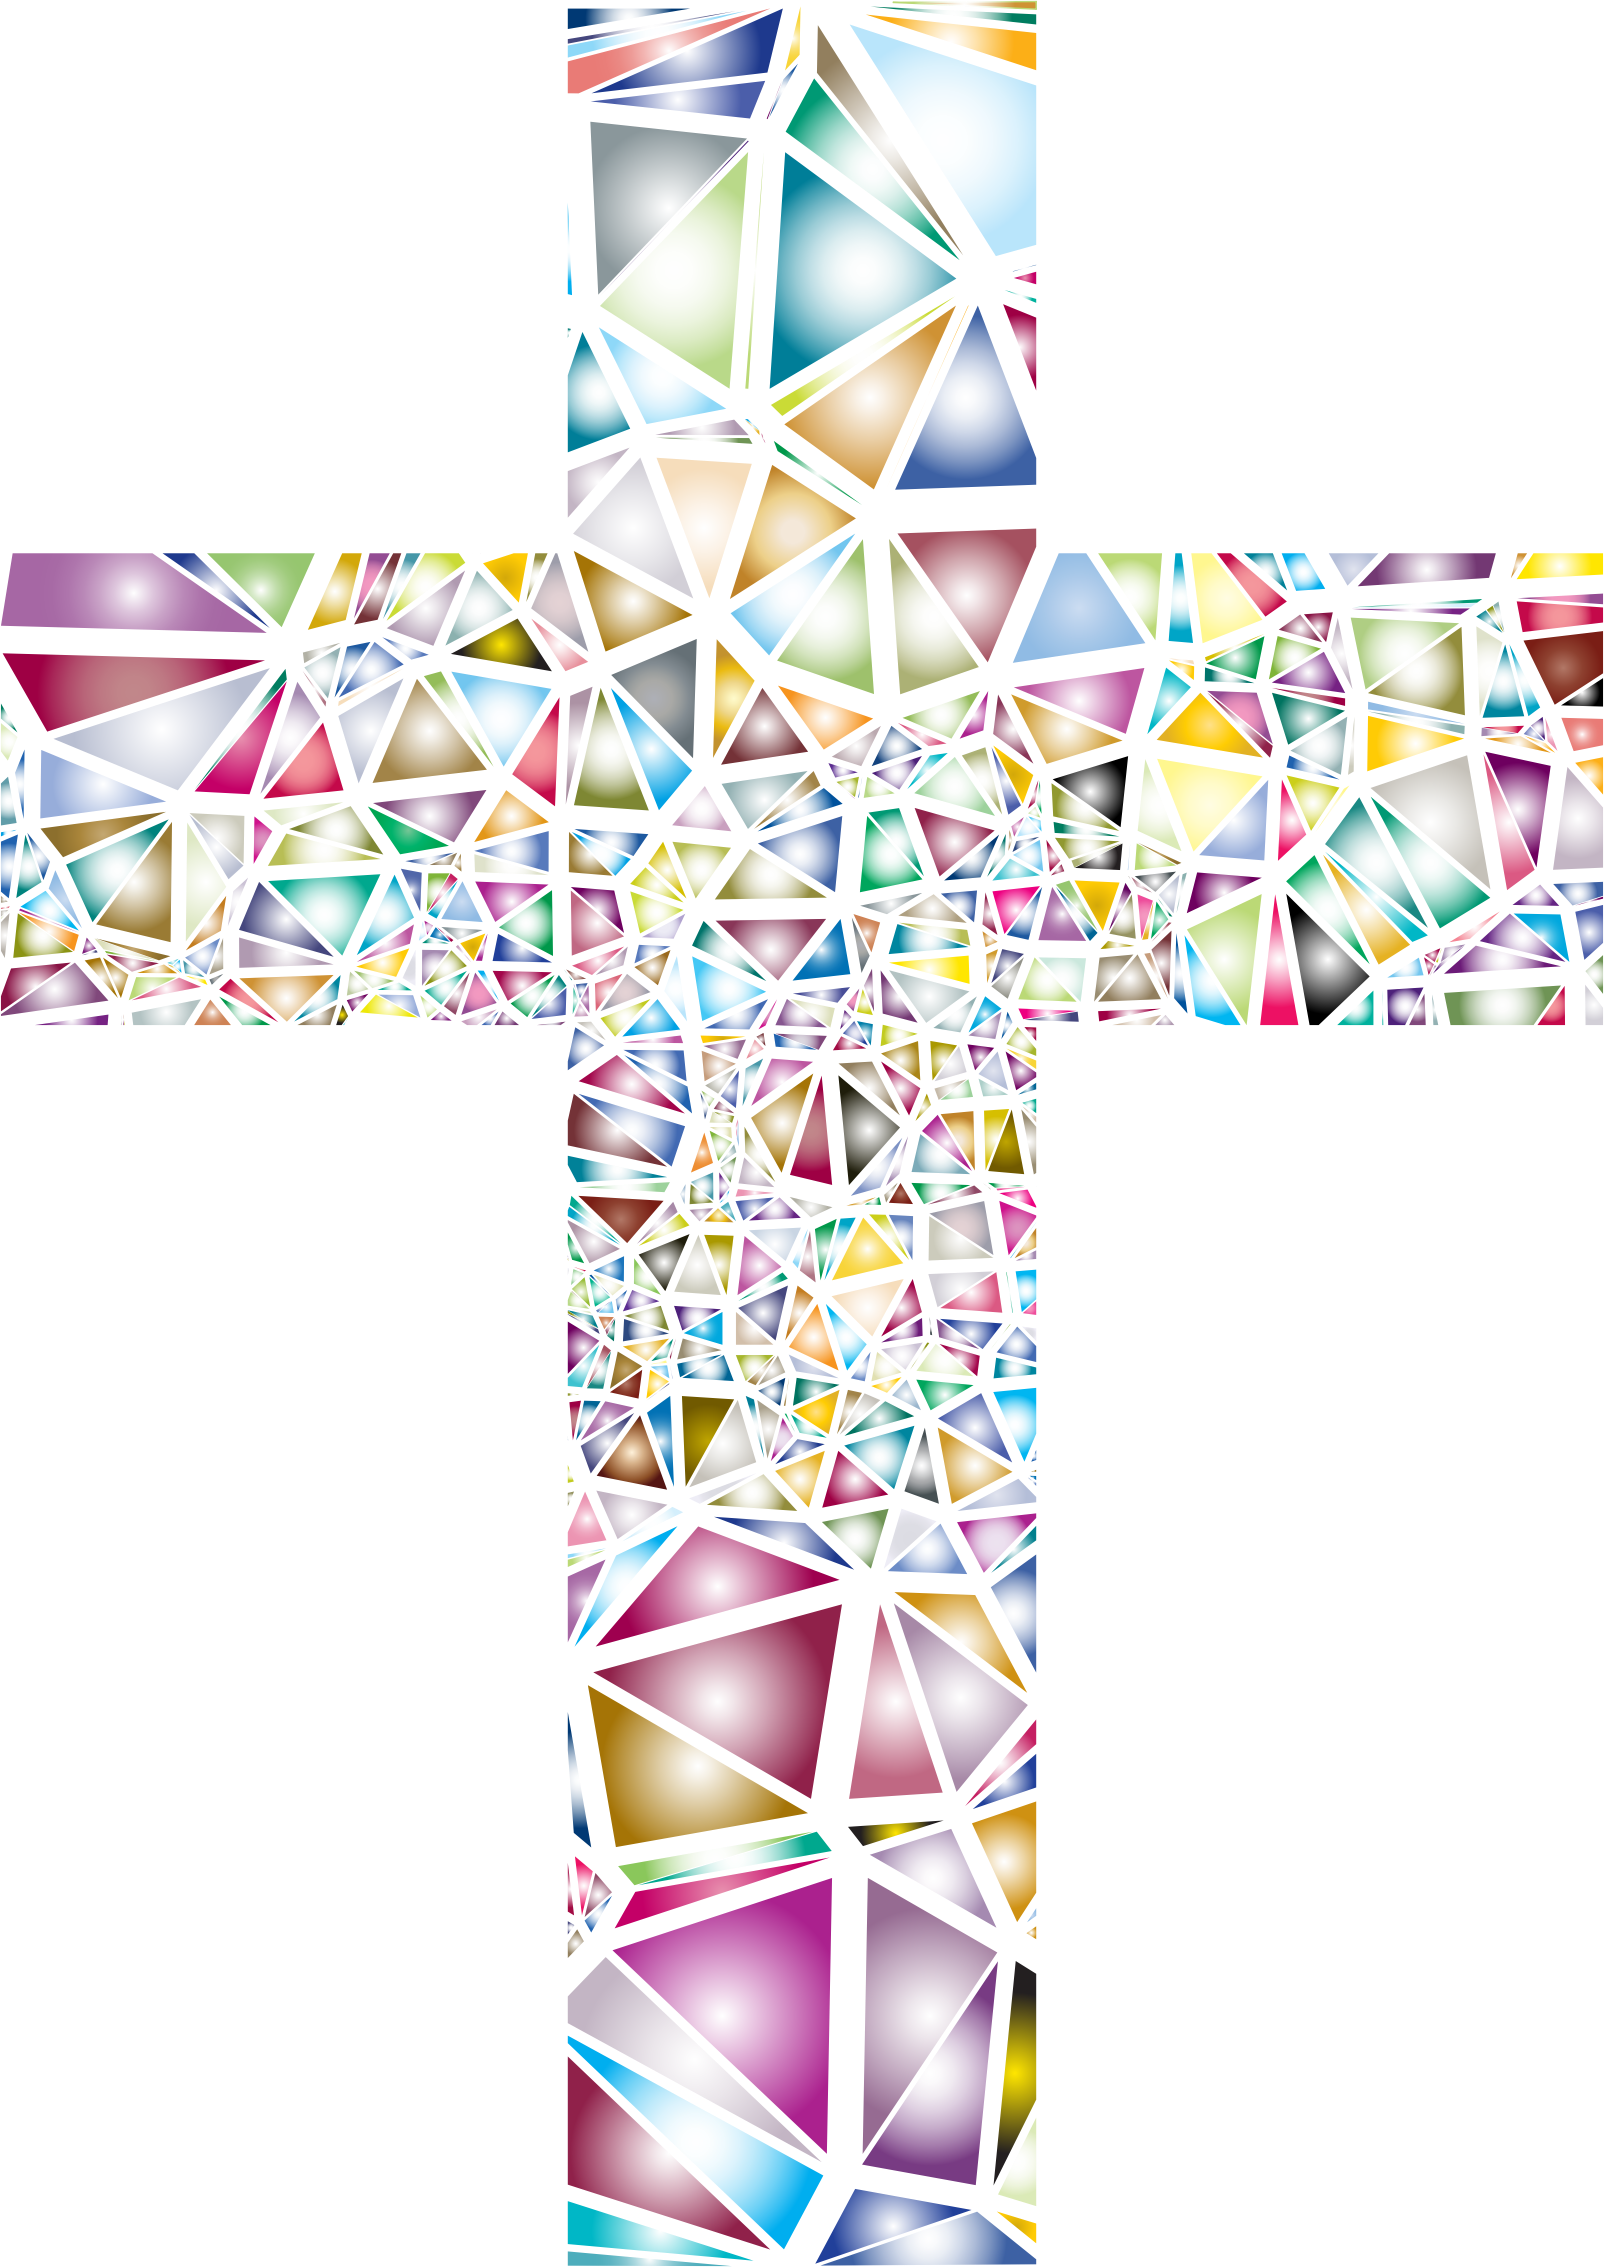 Low Poly Stained Glass Cross 2 No Background by GDJ